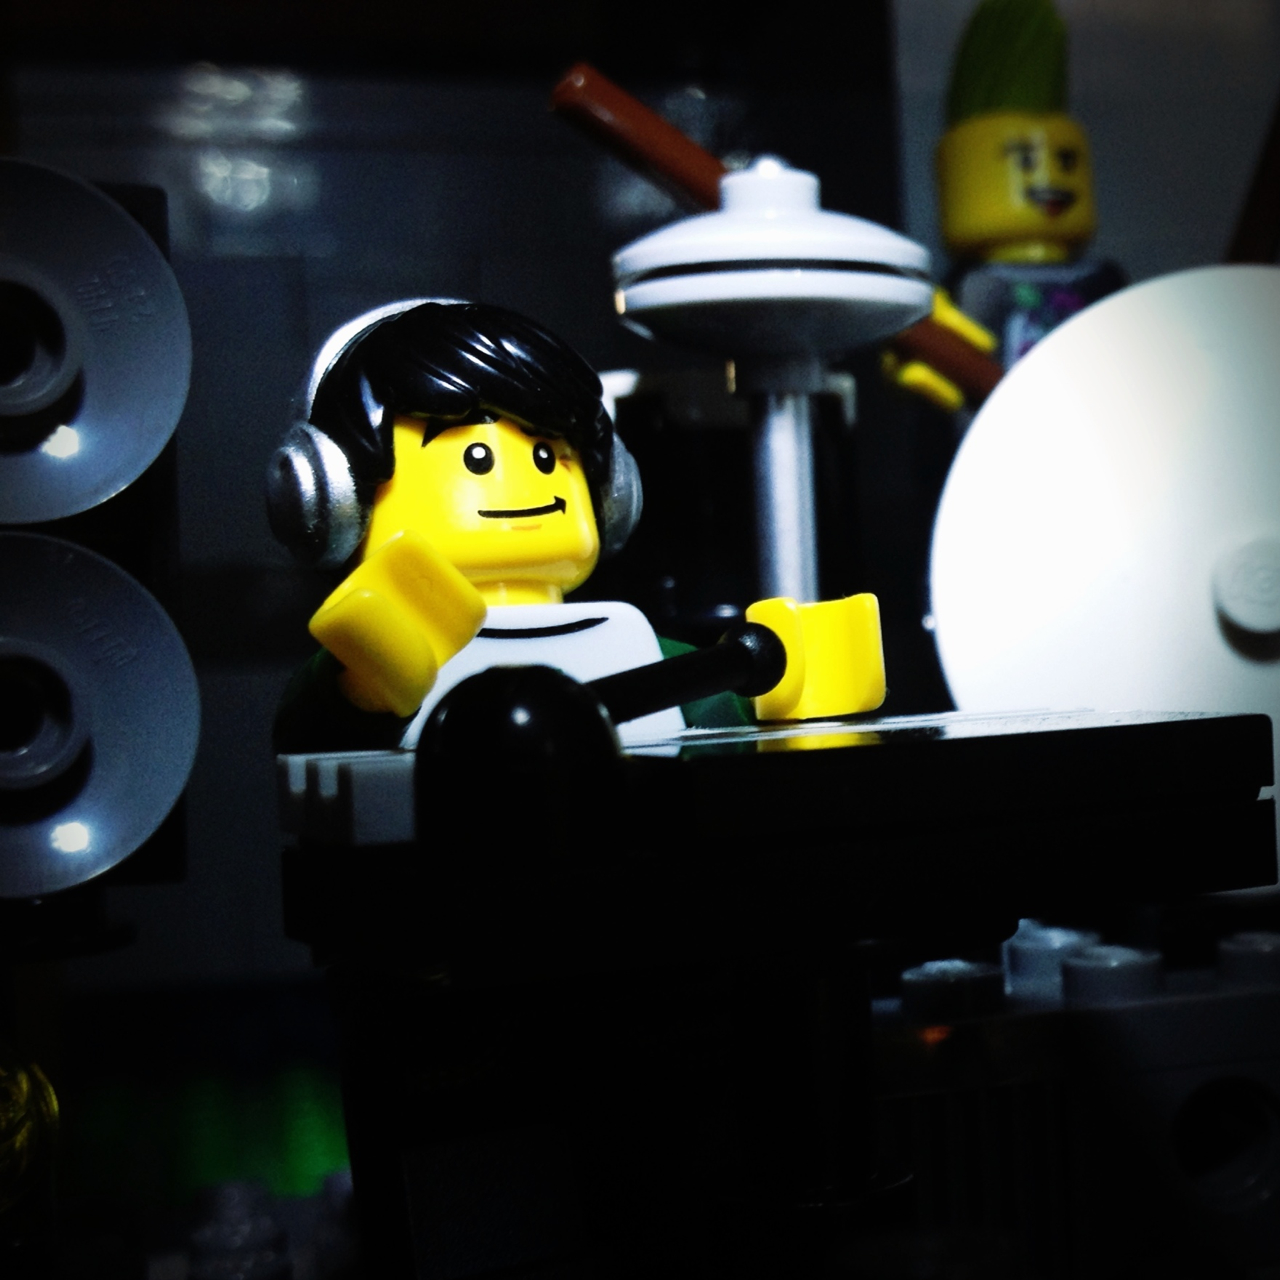 LegoGenre 00212: Sampling A Better Break.